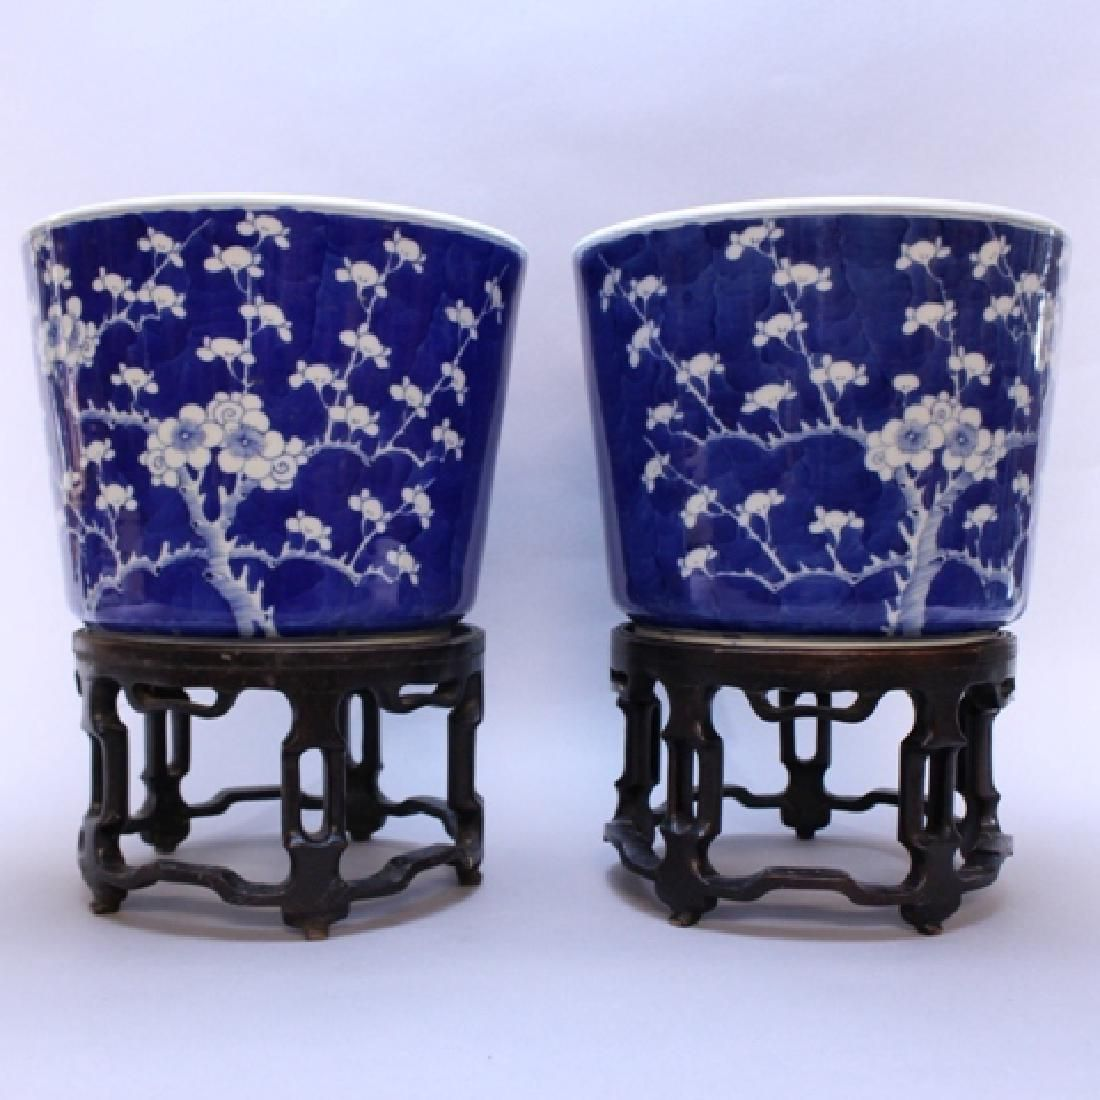 Pair of Chinese Blue and White Planters on Stands